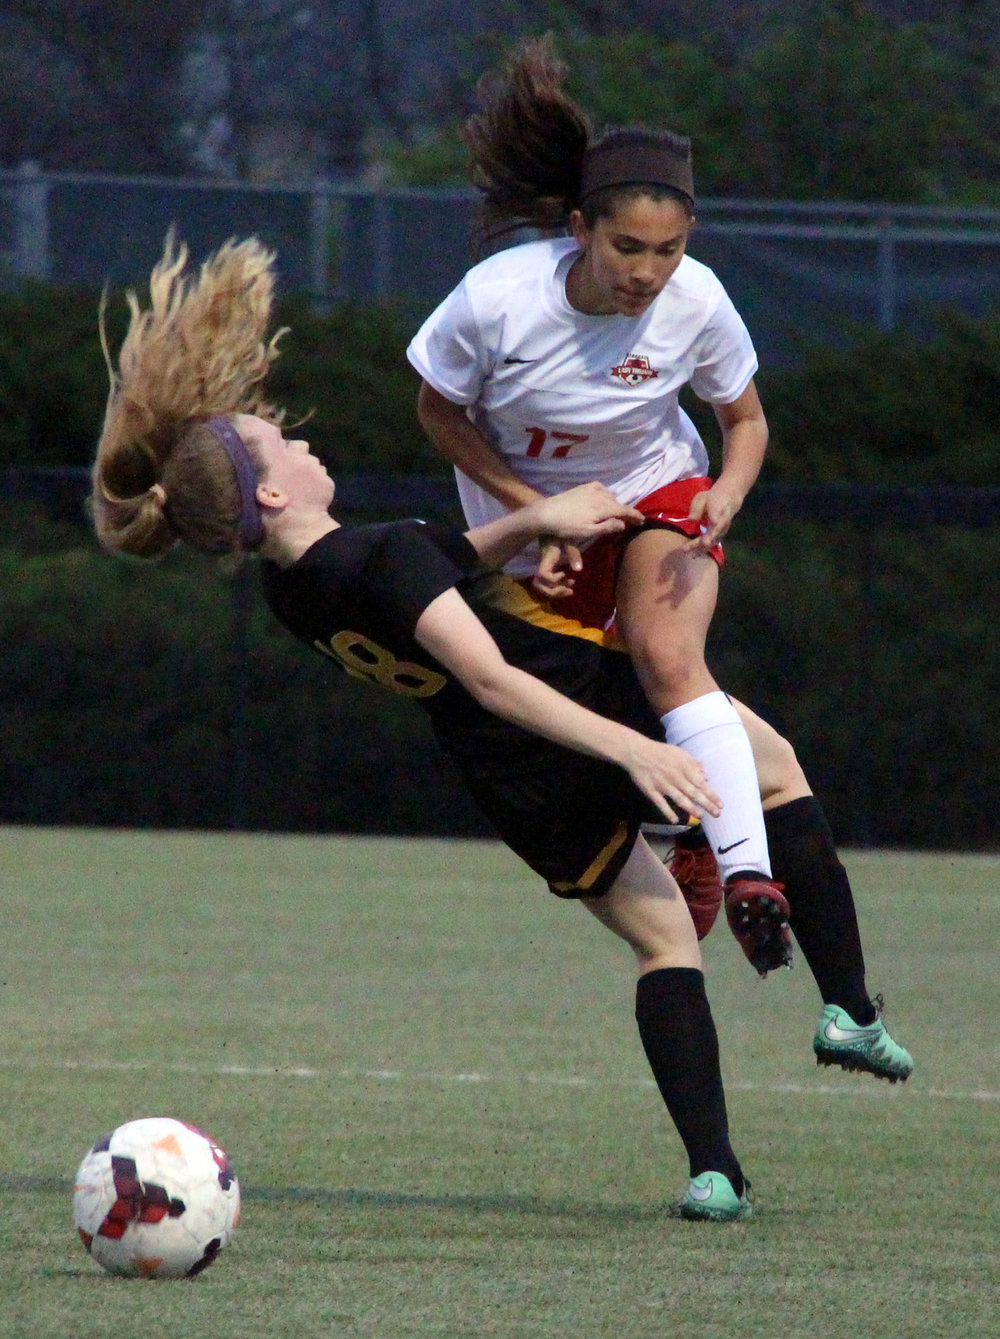 ROSS MARTIN/Citizen photo Park Hill sophomore forward Ayana Weissenfluh clatters into a St. Teresa's Academy defender during a match Wednesday, April 12 at Park Hill District Soccer Complex in Riverside, Mo.